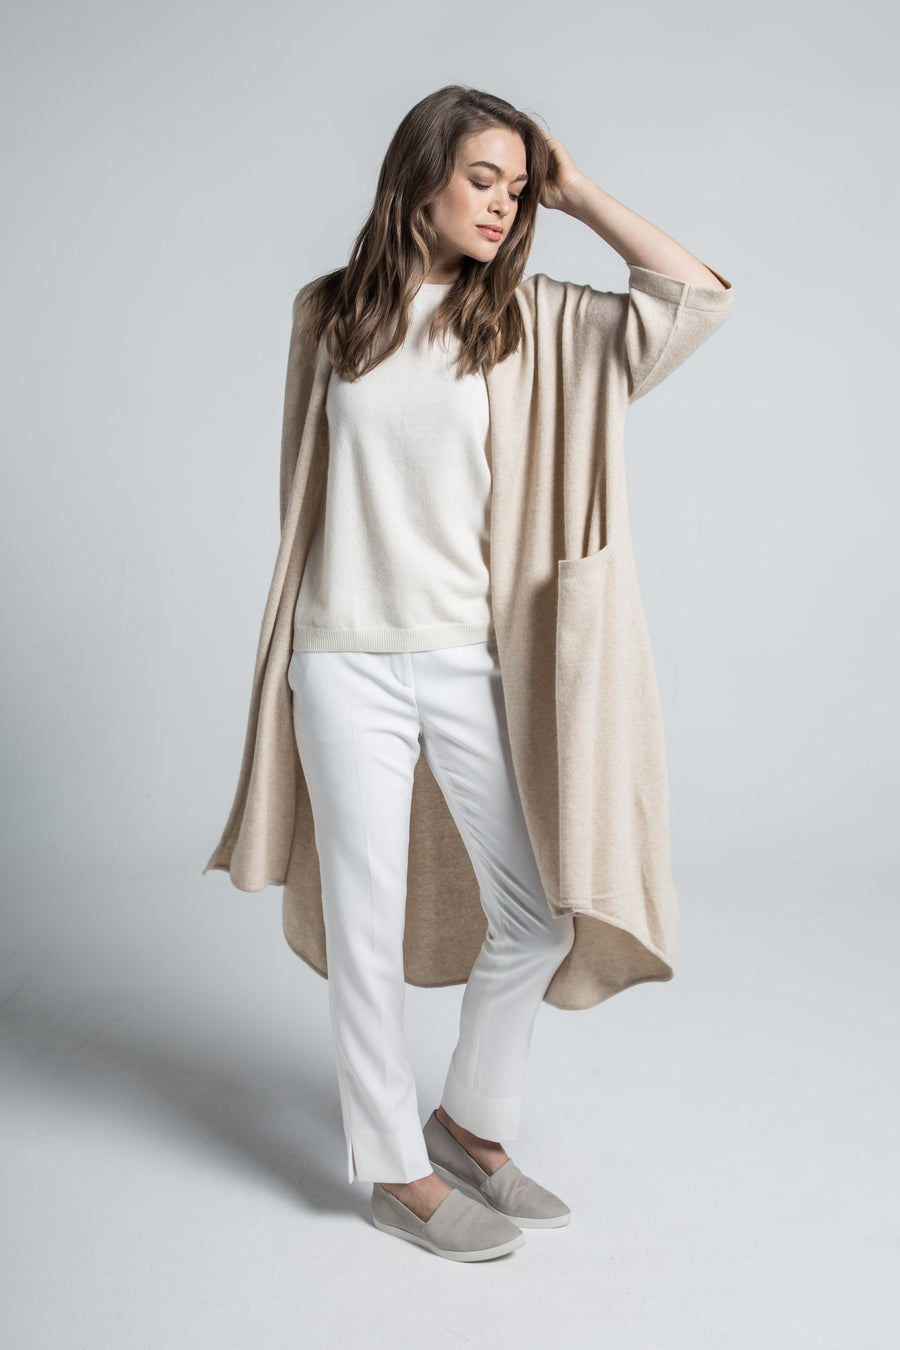 pine cashmere celine women's loose fit 100% pure organic cashmere cardigan coat in tan beige